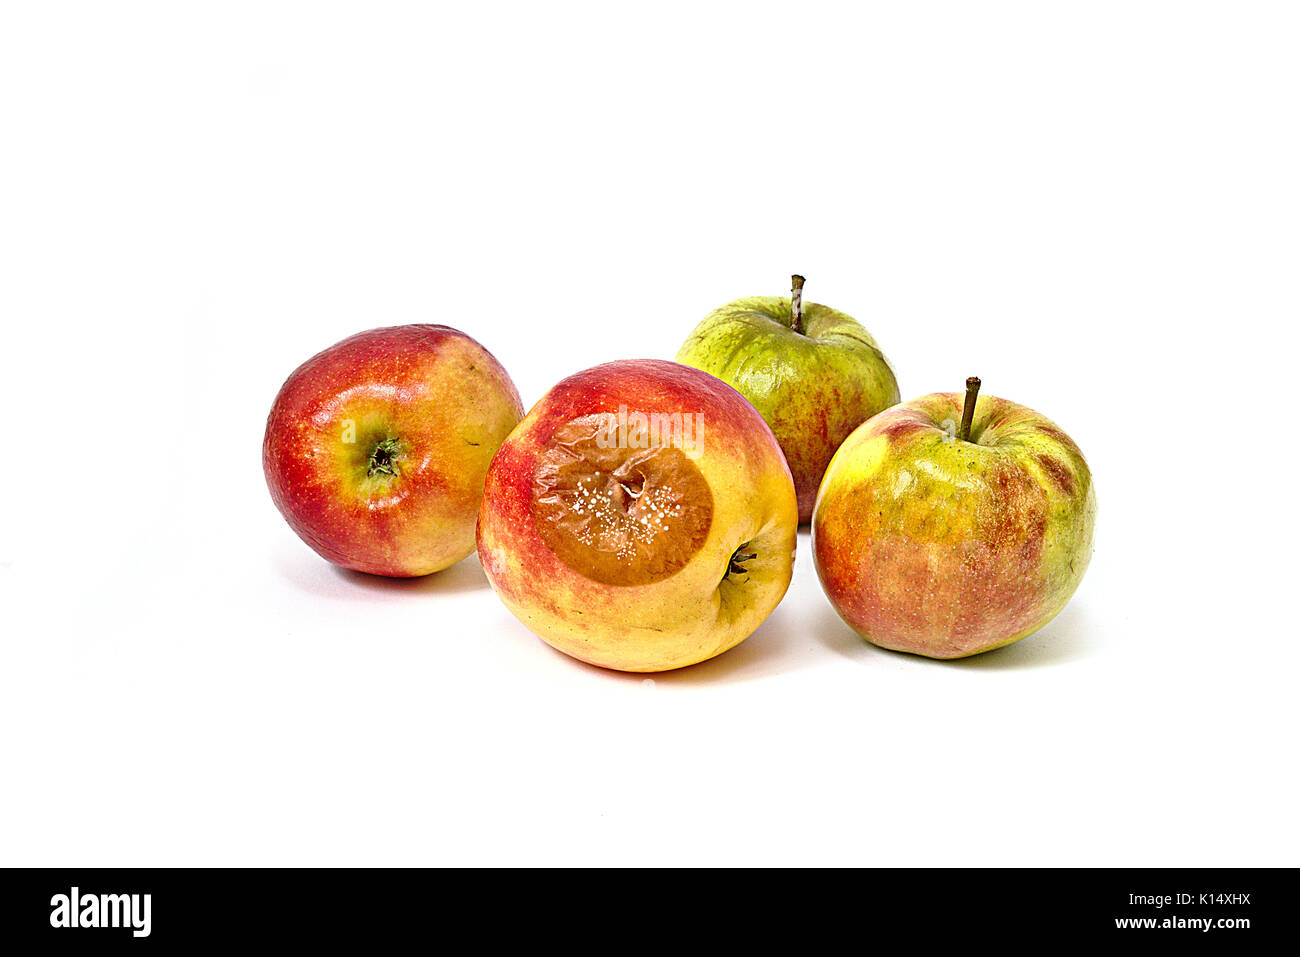 Bad apple with mold among edible apples - Stock Image